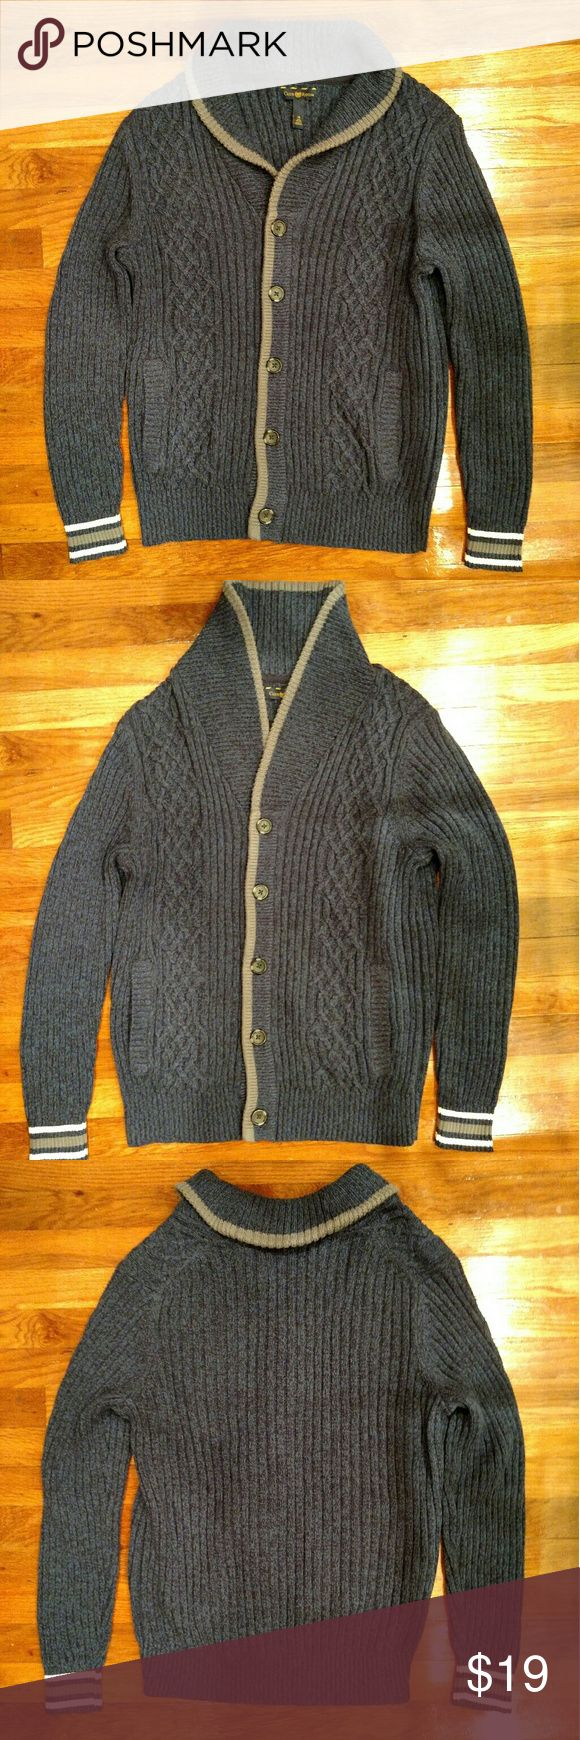 ➡ Club Room Men's Shawl Cardigan Sweater Men's cardigan with shawl collar.  100% Cotton.  Thick, soft, and cozy.  Perfect condition. Club Room Sweaters Cardigan